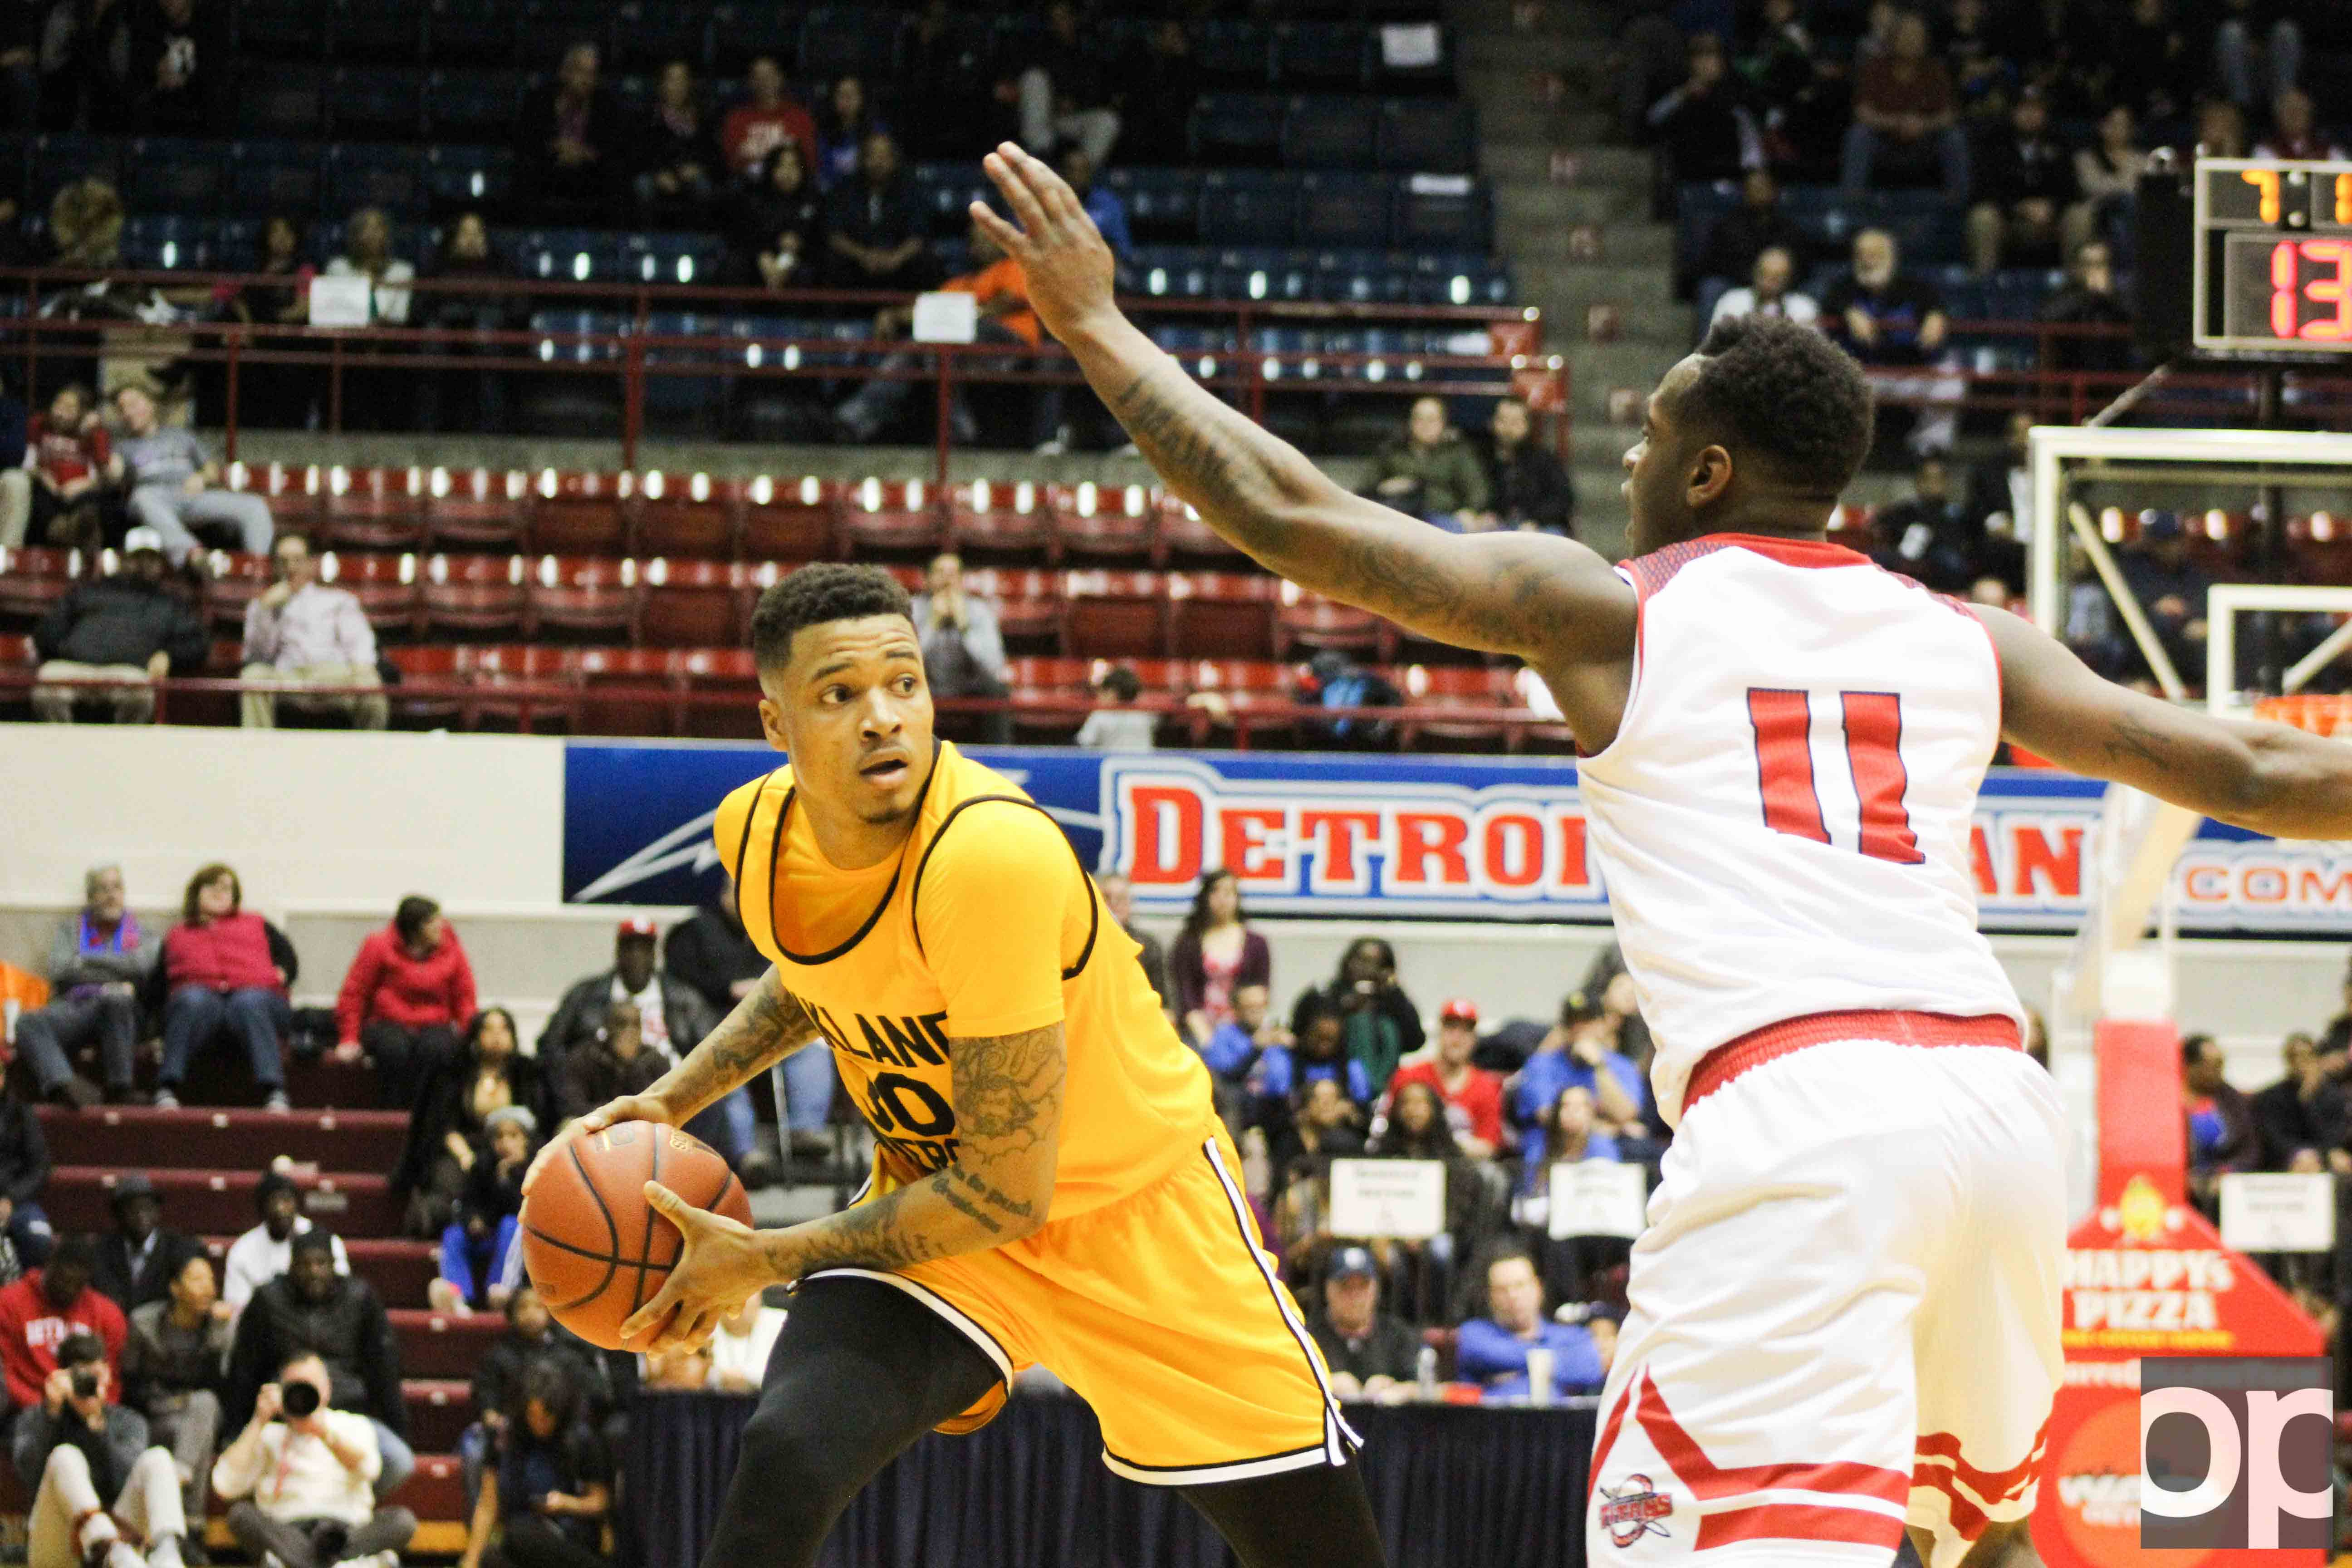 Sherron Dorsey-Walker and Jalen Hayes both scored 23 points to lead Oakland to its 89-80 win over University of Detroit Mercy on Friday, Feb. 10 at Calihan Hall.